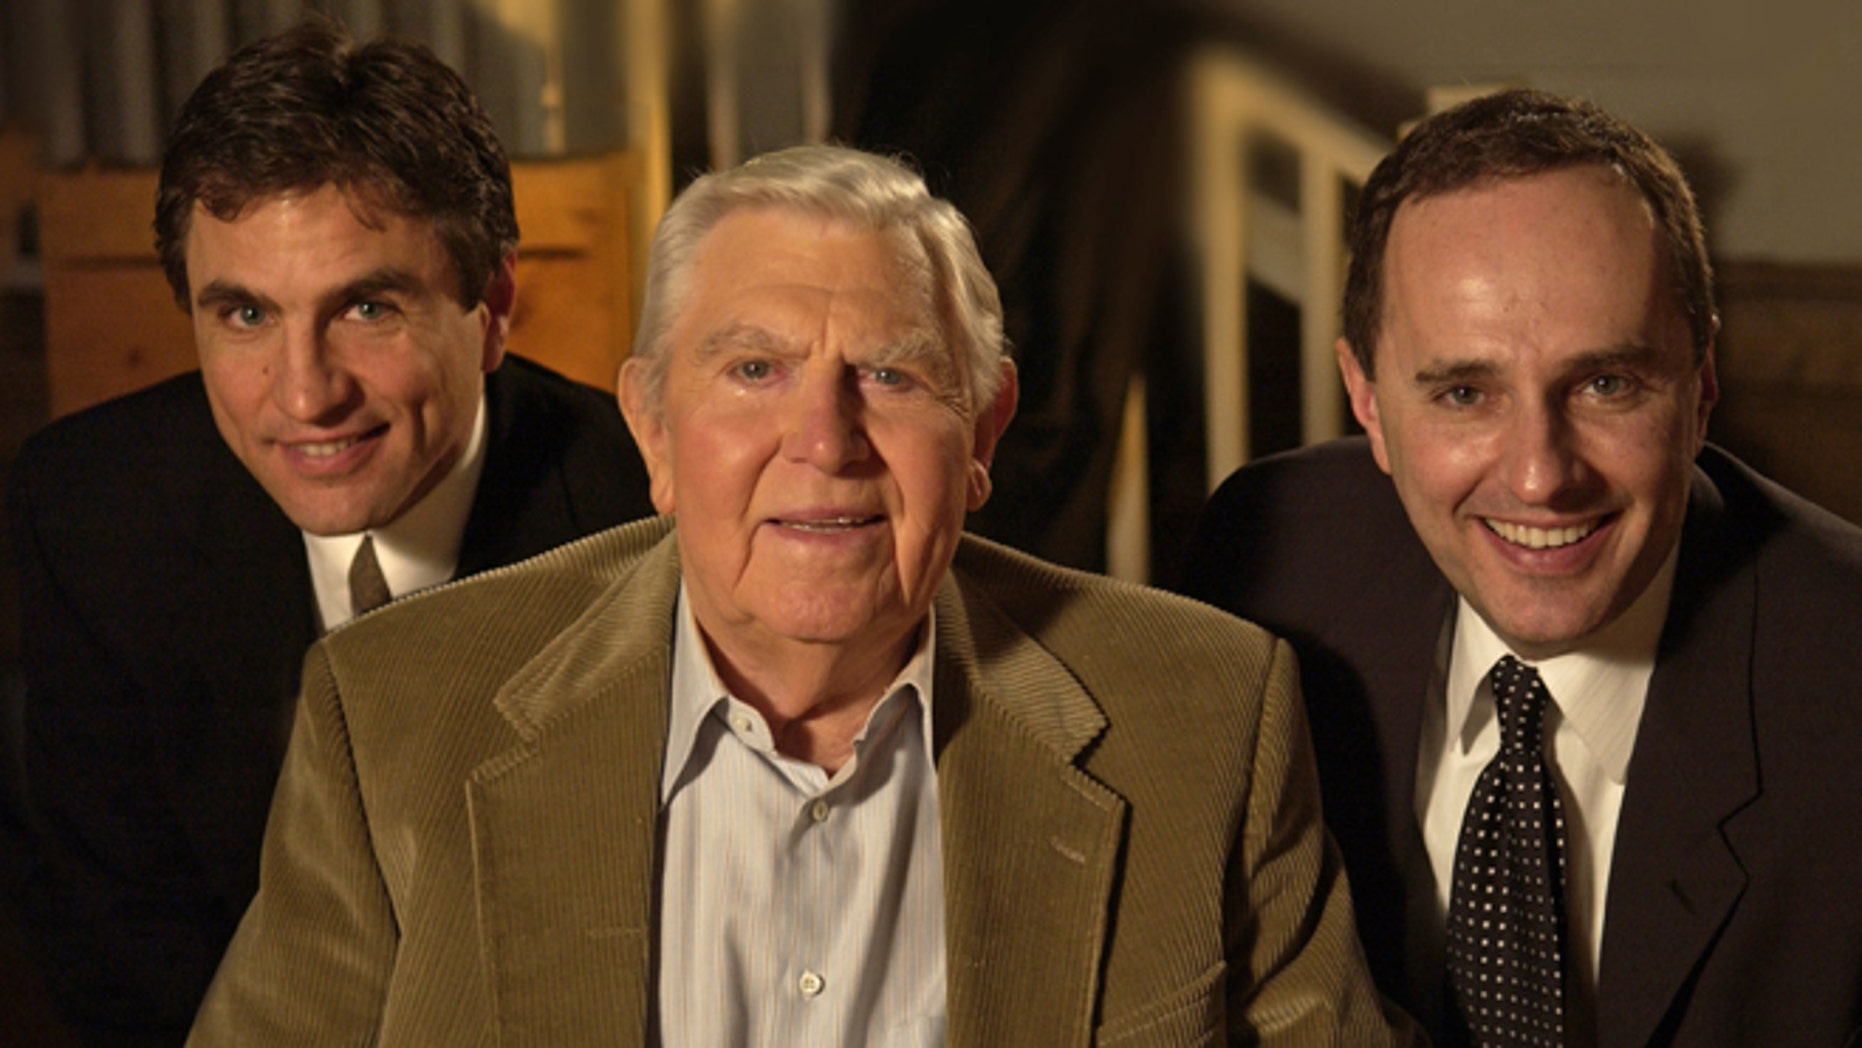 """From left to right: Mike Trinklein, Andy Griffith and Steve Boettcher at a taping for PBS' """"Pioneers of Television,"""" a documentary series that offers inside stories from some of America's most beloved television stars. Trinklein and Boettcher, the series producers, were interviewing Griffith for the Sitcoms episode, which aired in 2008."""